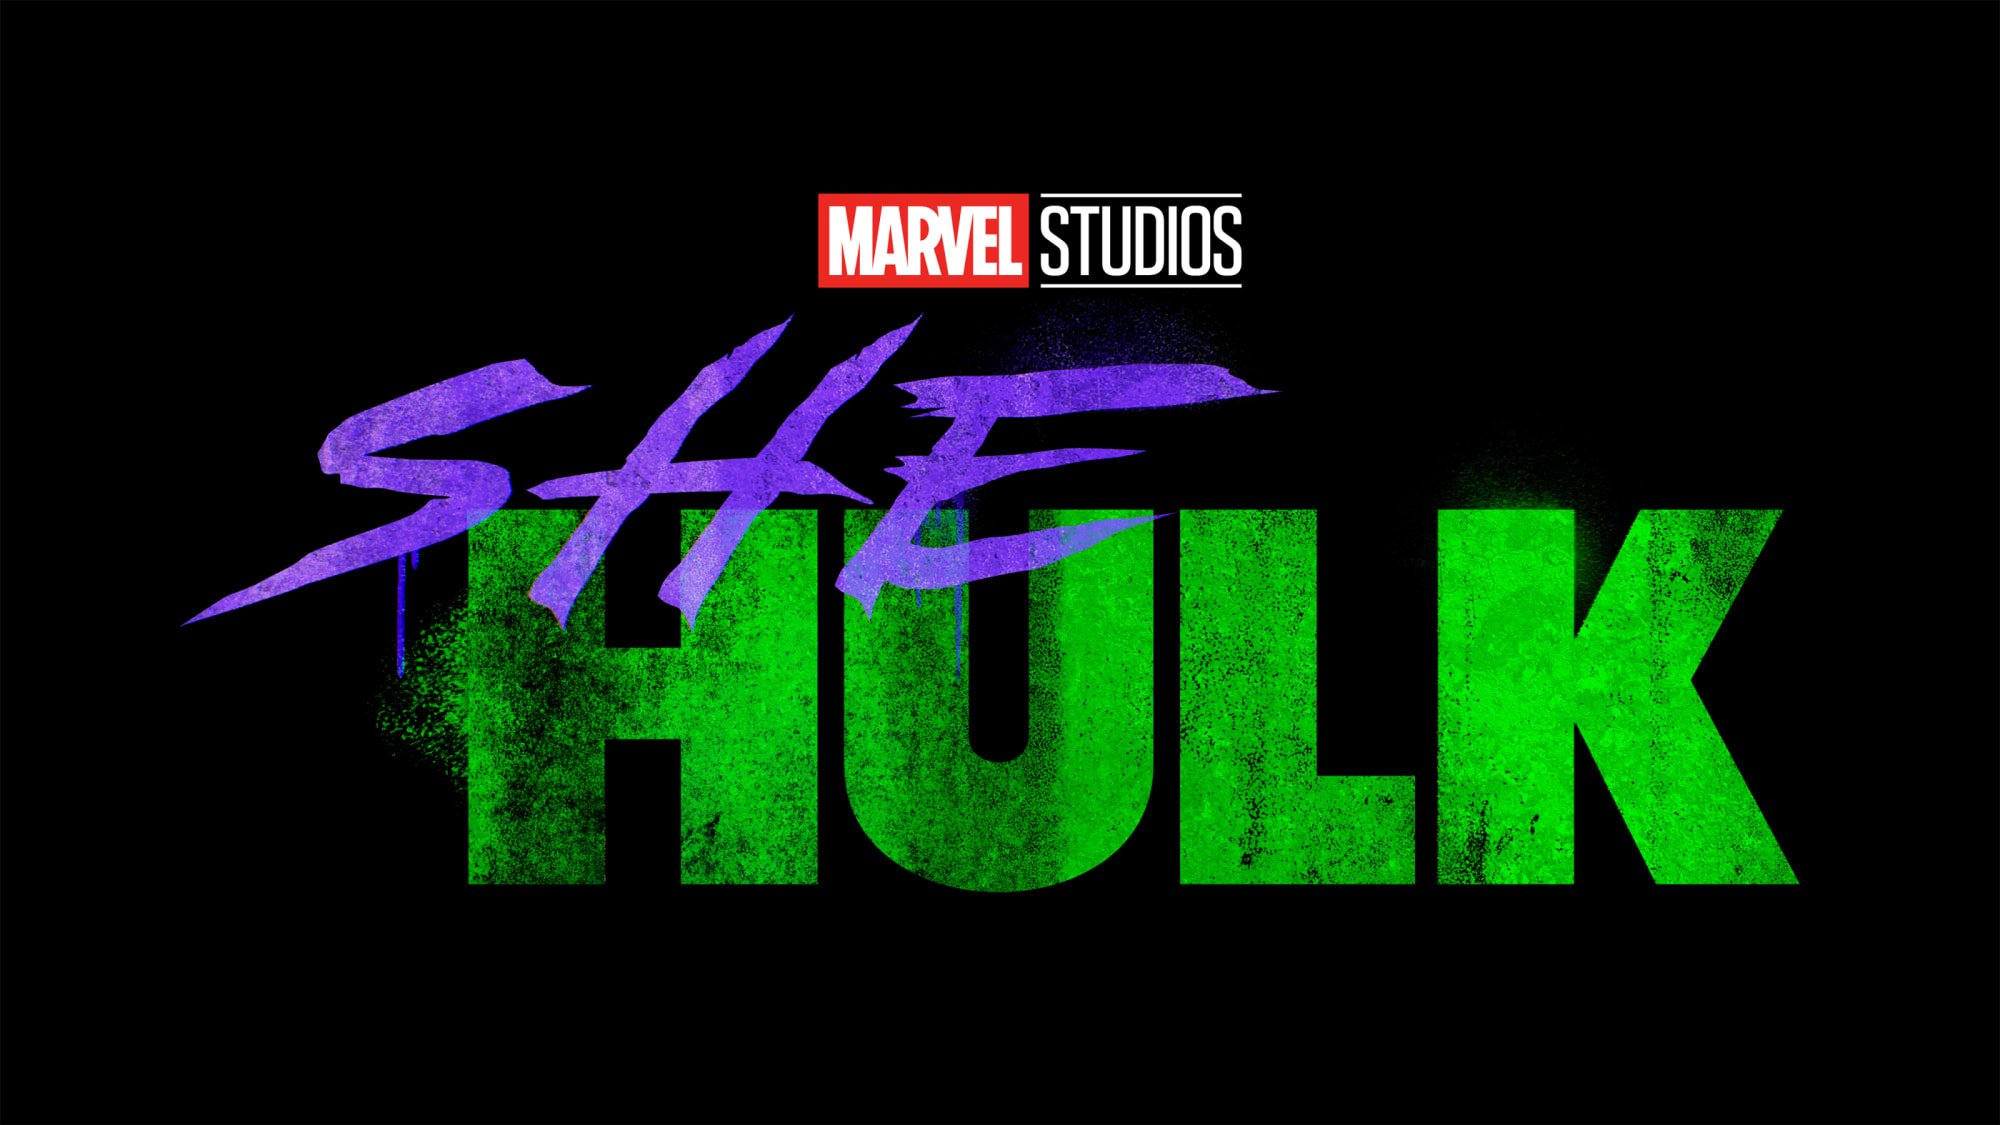 She-Hulk: Jameela Jamil suits up as Titania in jaw-dropping first look set photo?